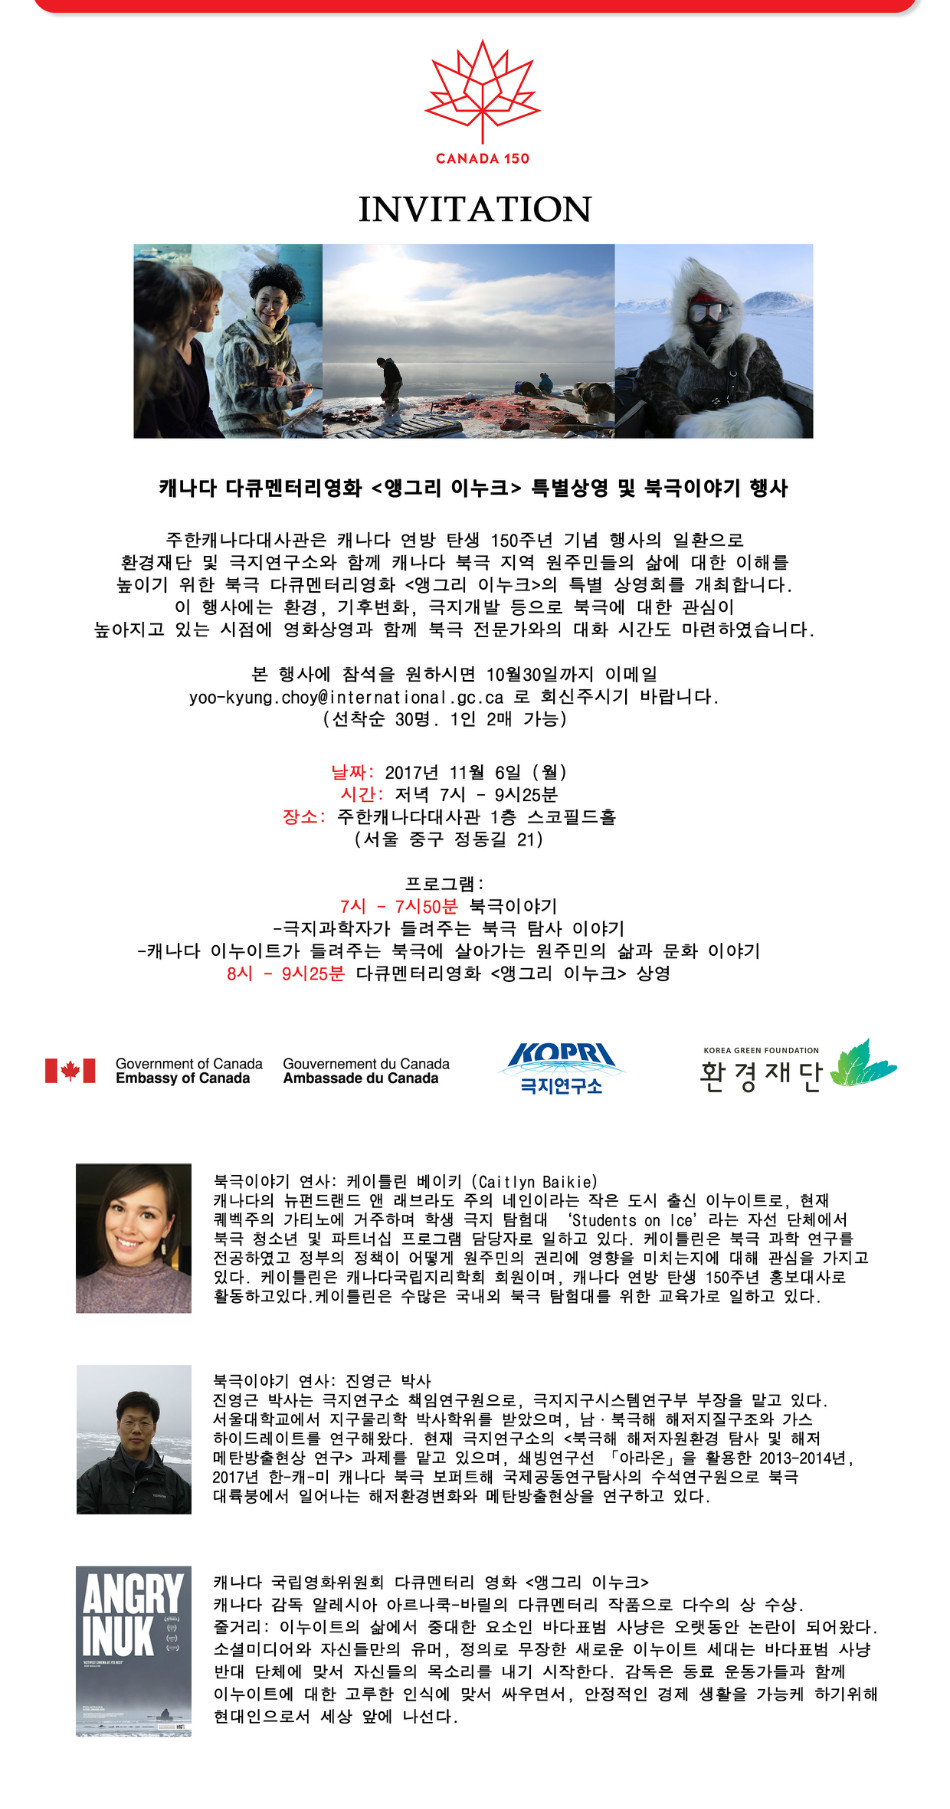 E-vite_Arctic Talk & Film Screening of Angry Inuk (KR).jpg